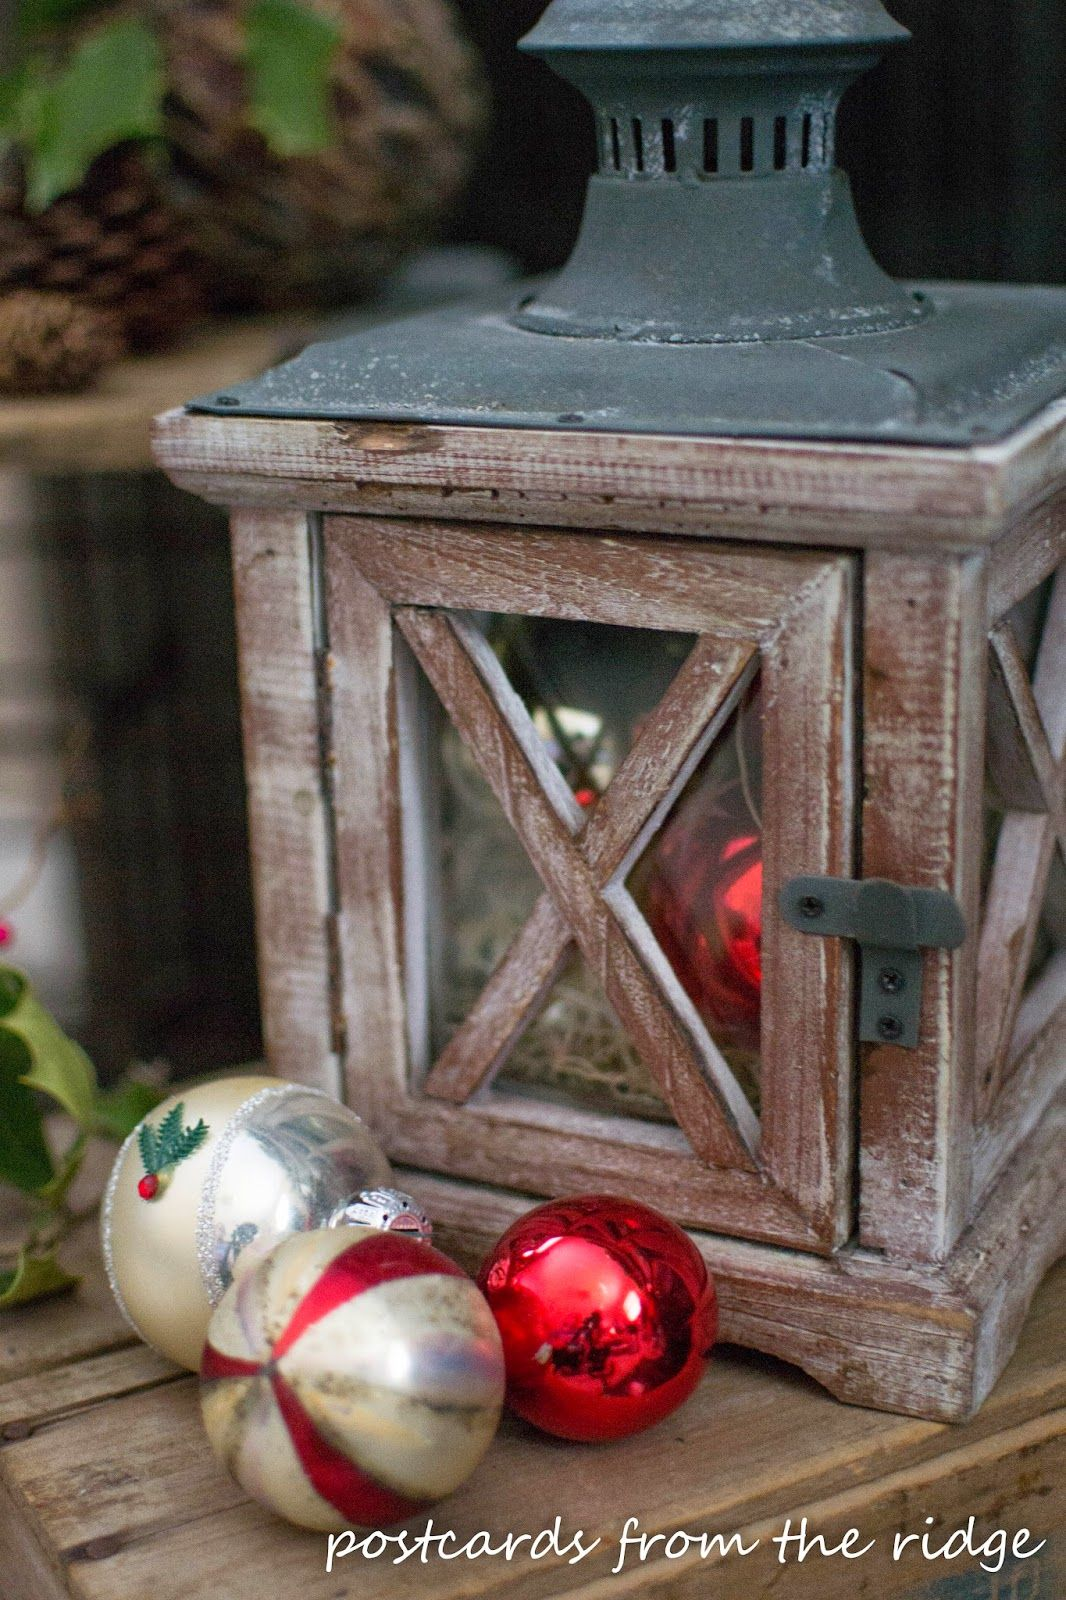 Postcards from the Ridge: Home for the Holidays ~ 2014 Christmas Home Tour